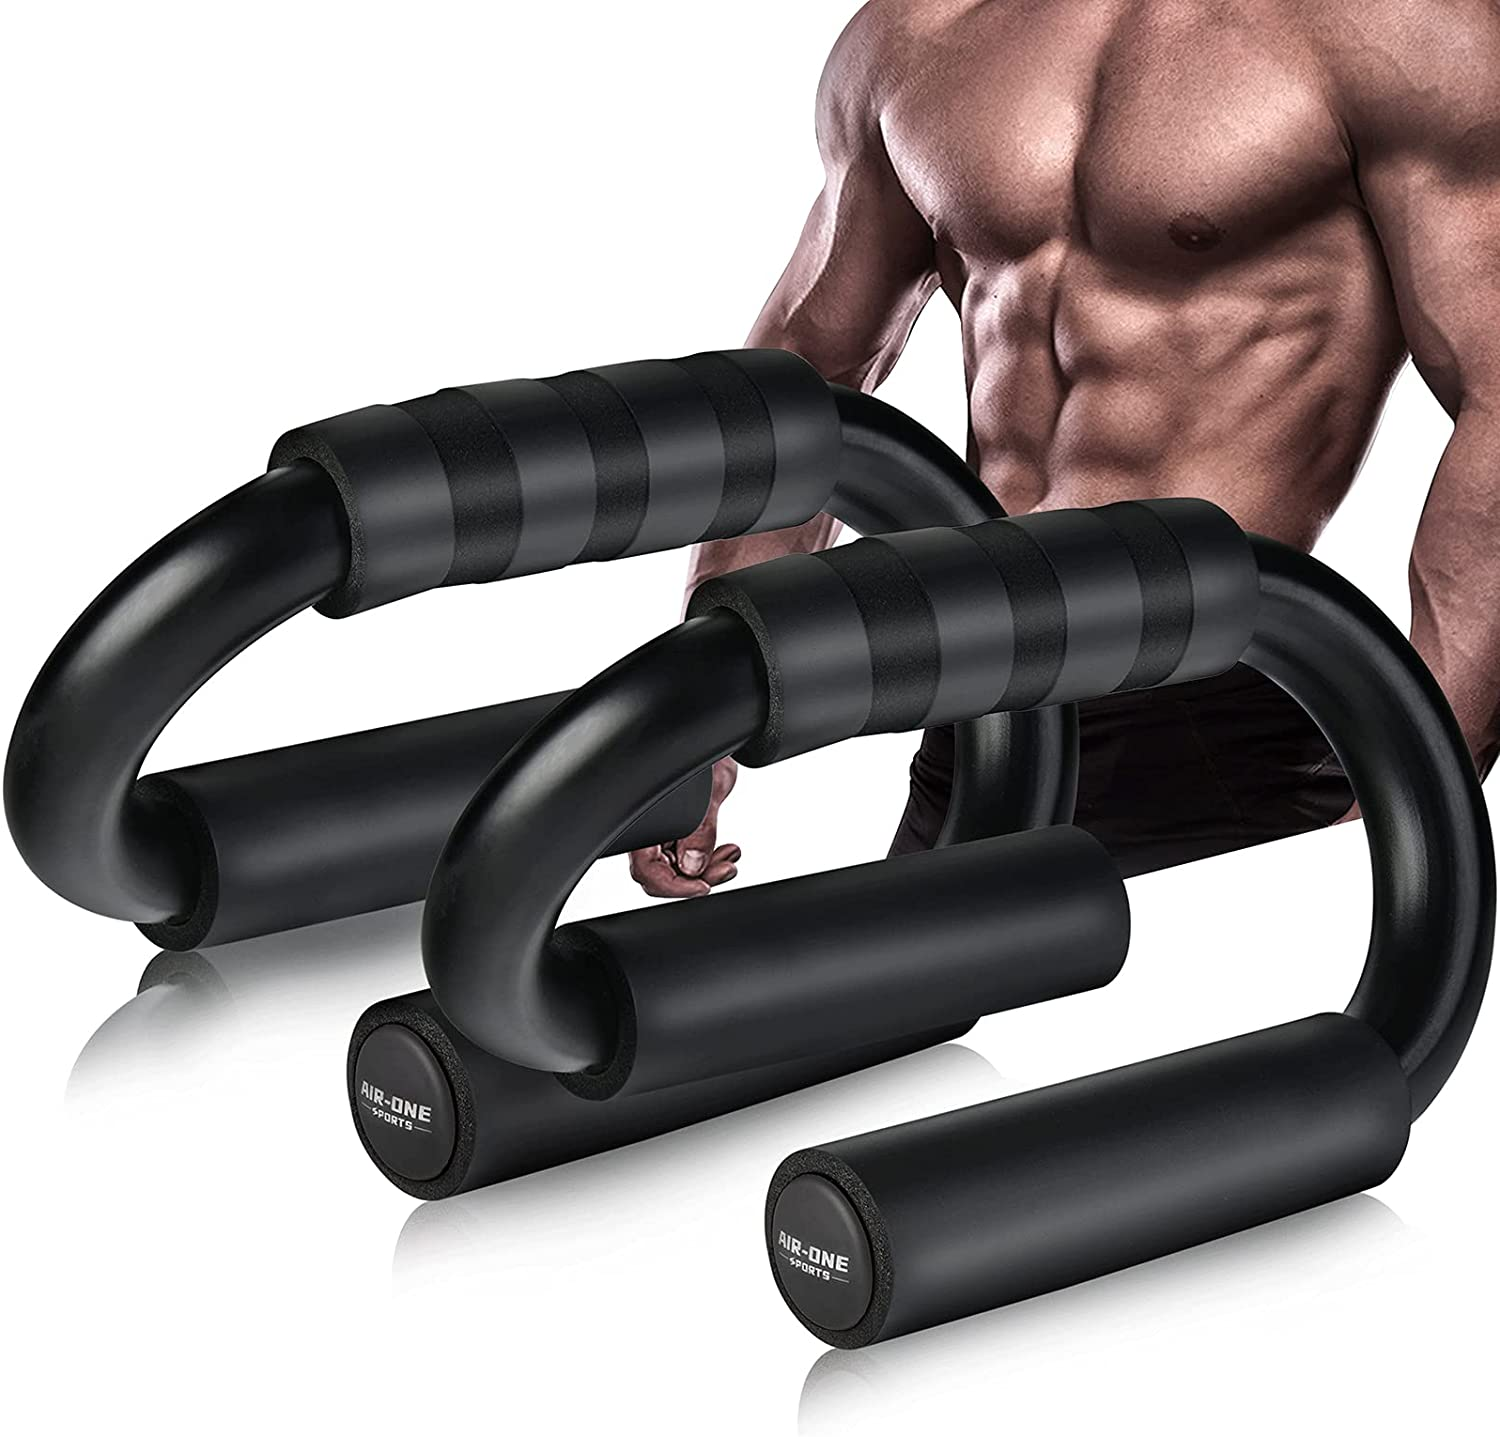 AIR-ONE SPORTS Push Up Bars with New Orleans Mall Extra T Jump Import Rope XL 600lb